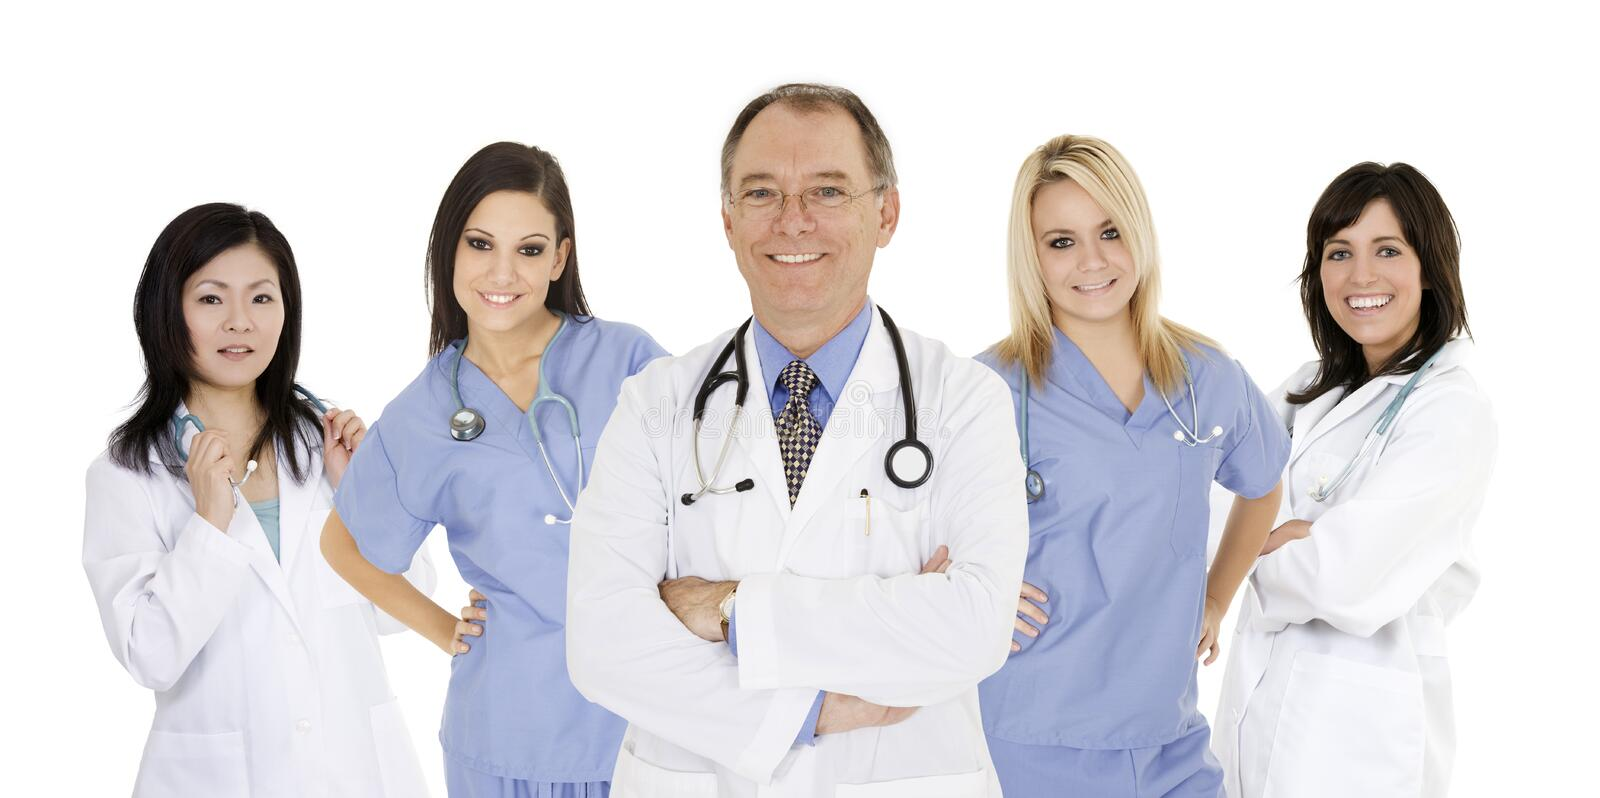 Download Group Of Confident Doctors And Nurses With Their Arms Crossed Displaying Some Attitude Isolated On White Background Stock Photo - Image of japanese, caucasian: 10258210